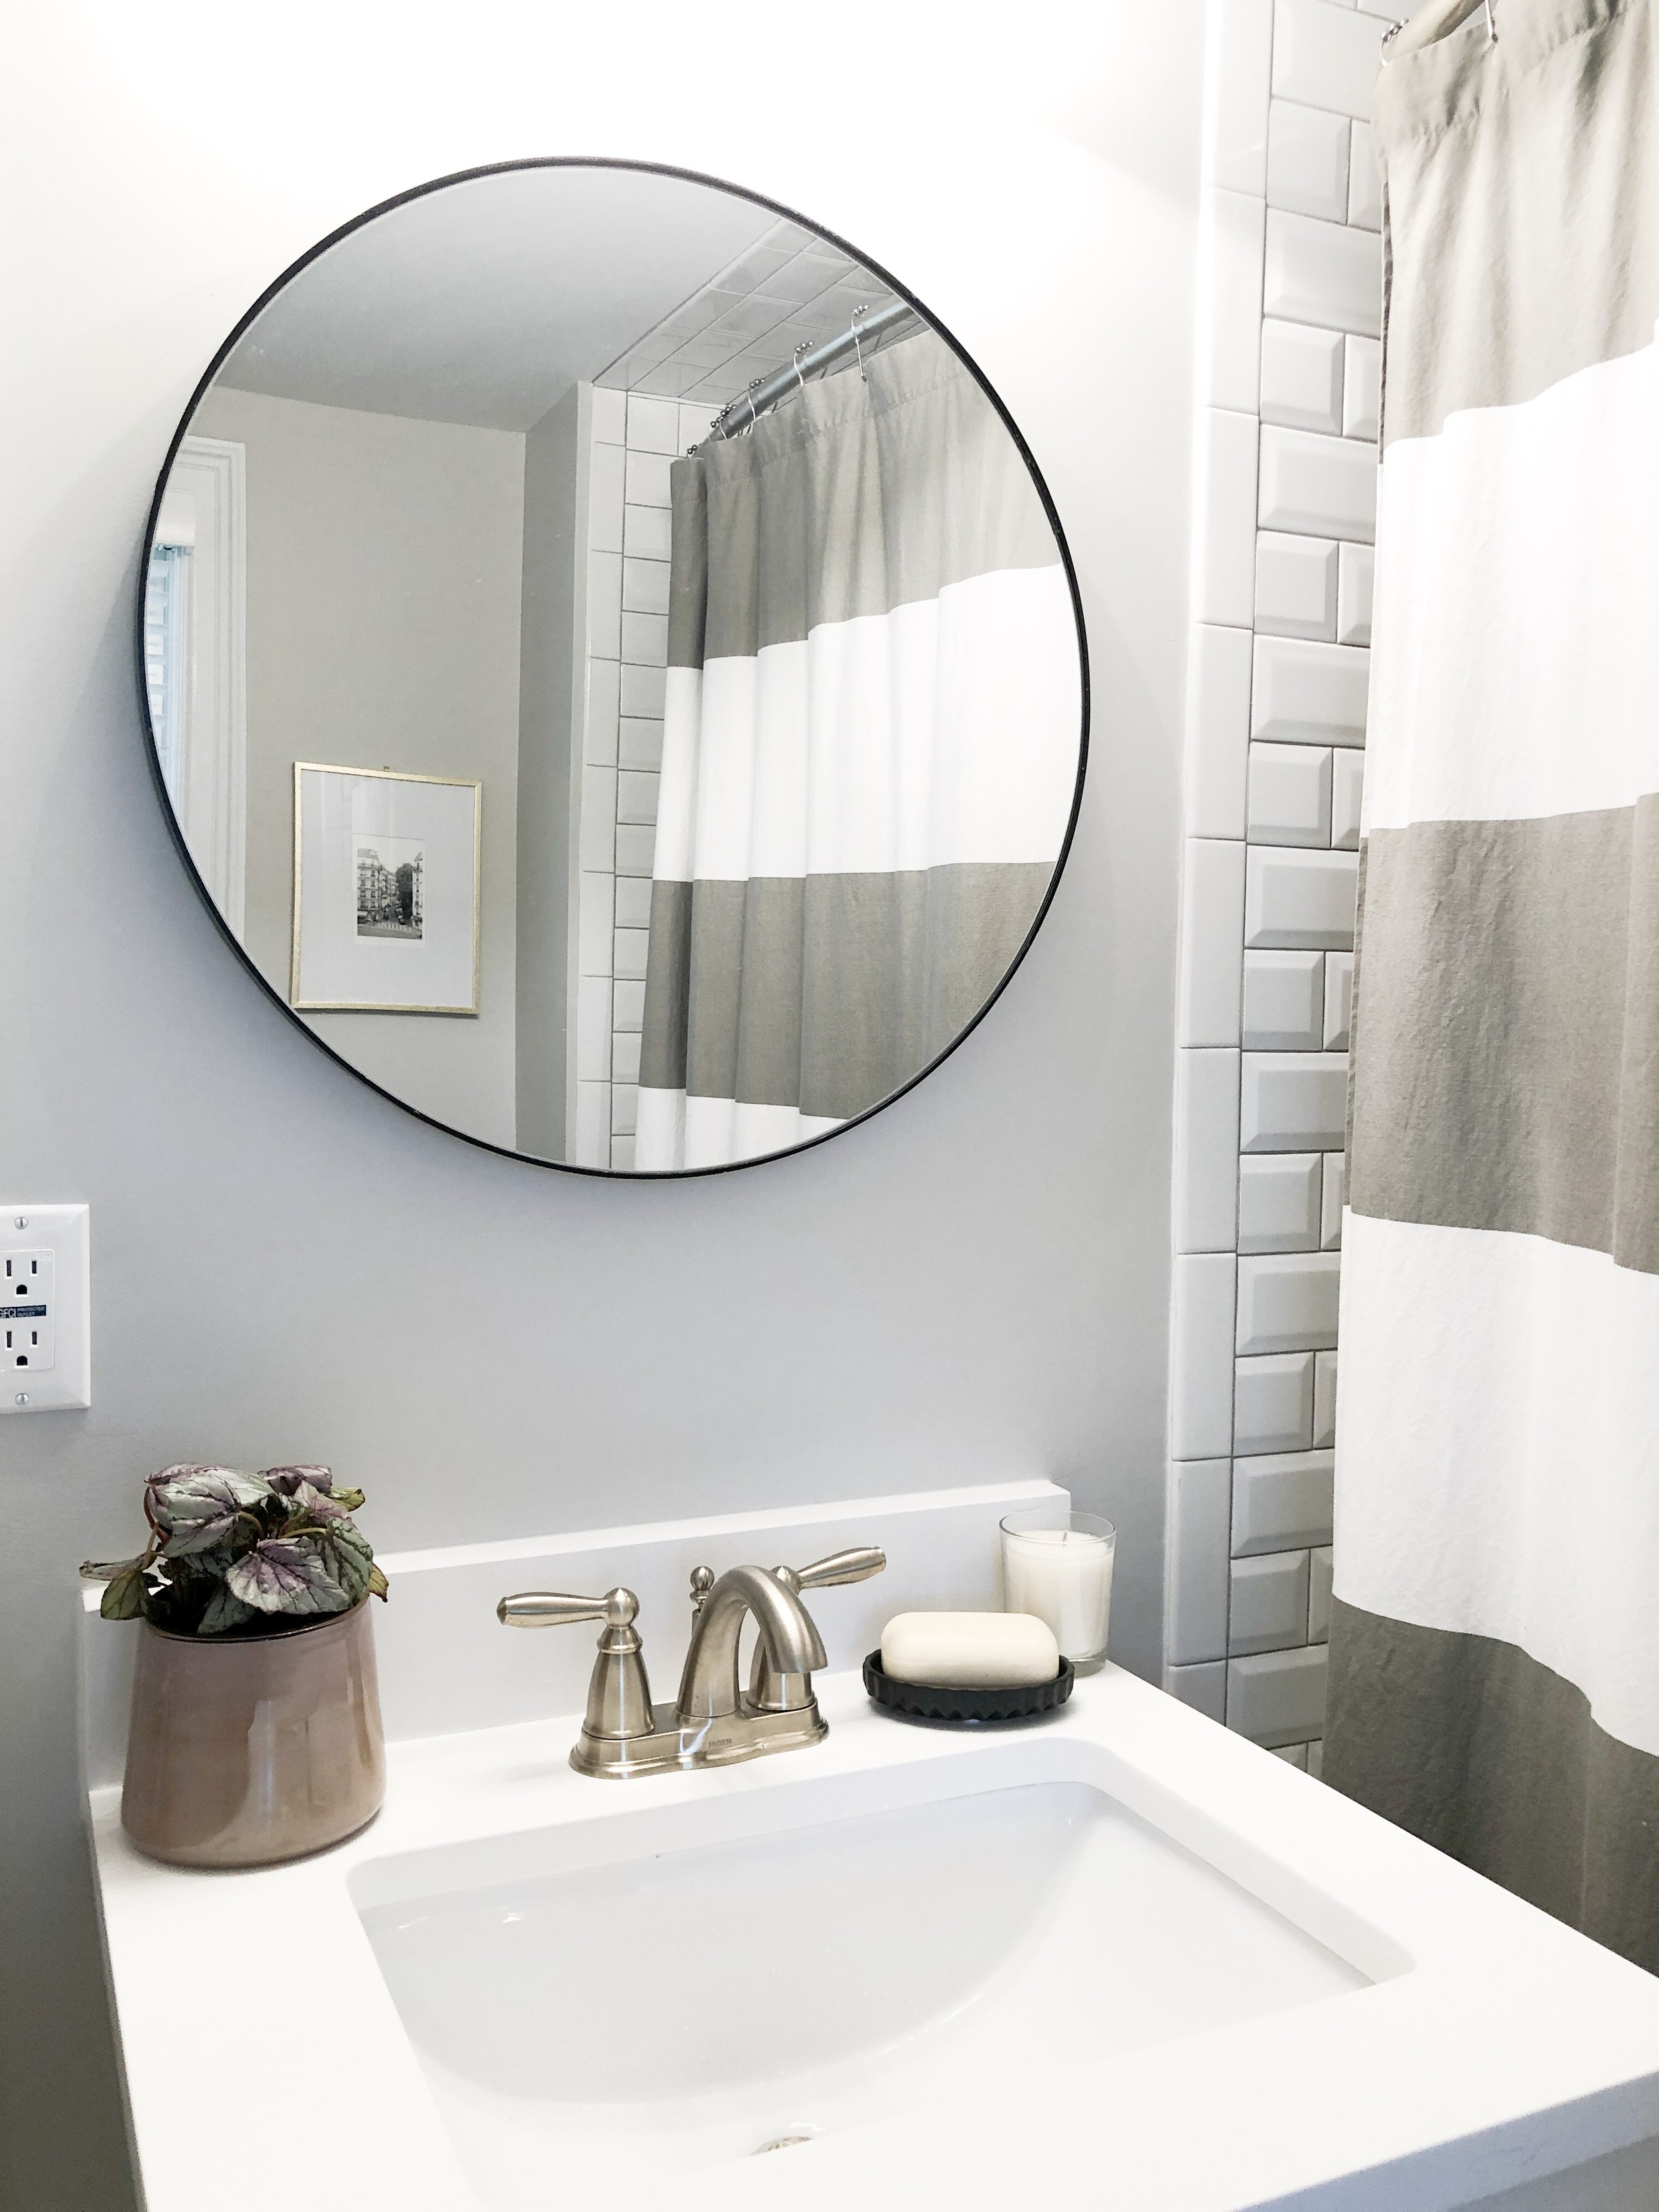 Sink accessories! I like to keep it simple especially when space is tight.